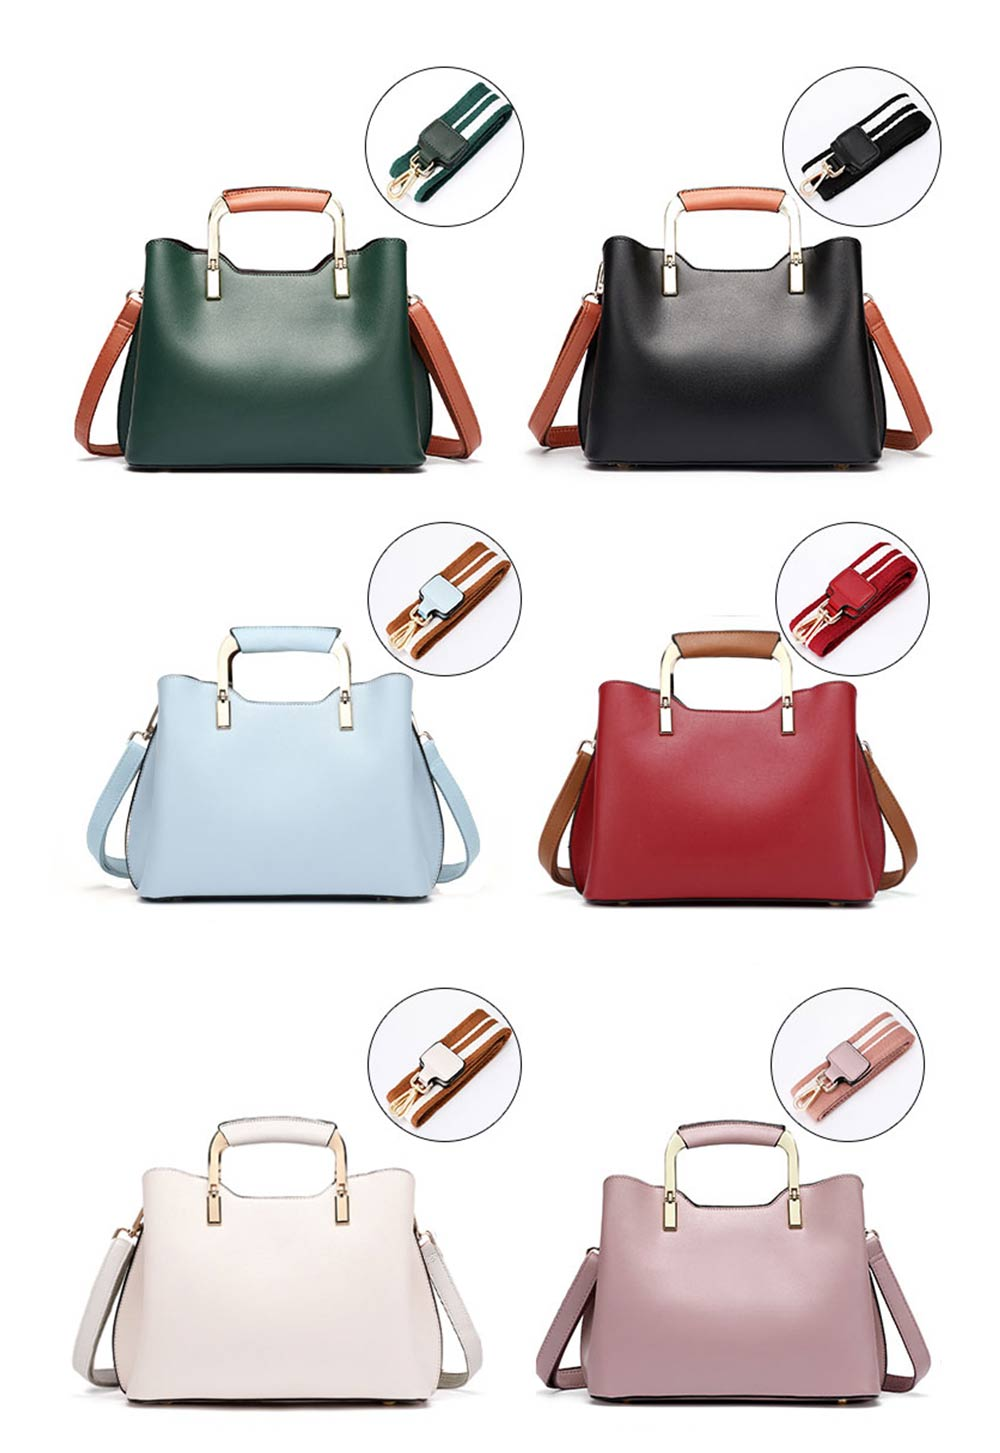 Elegant Women's Handbag with Magnetic Button, Stylish Women's Briefcase with Shoulder Strap 12